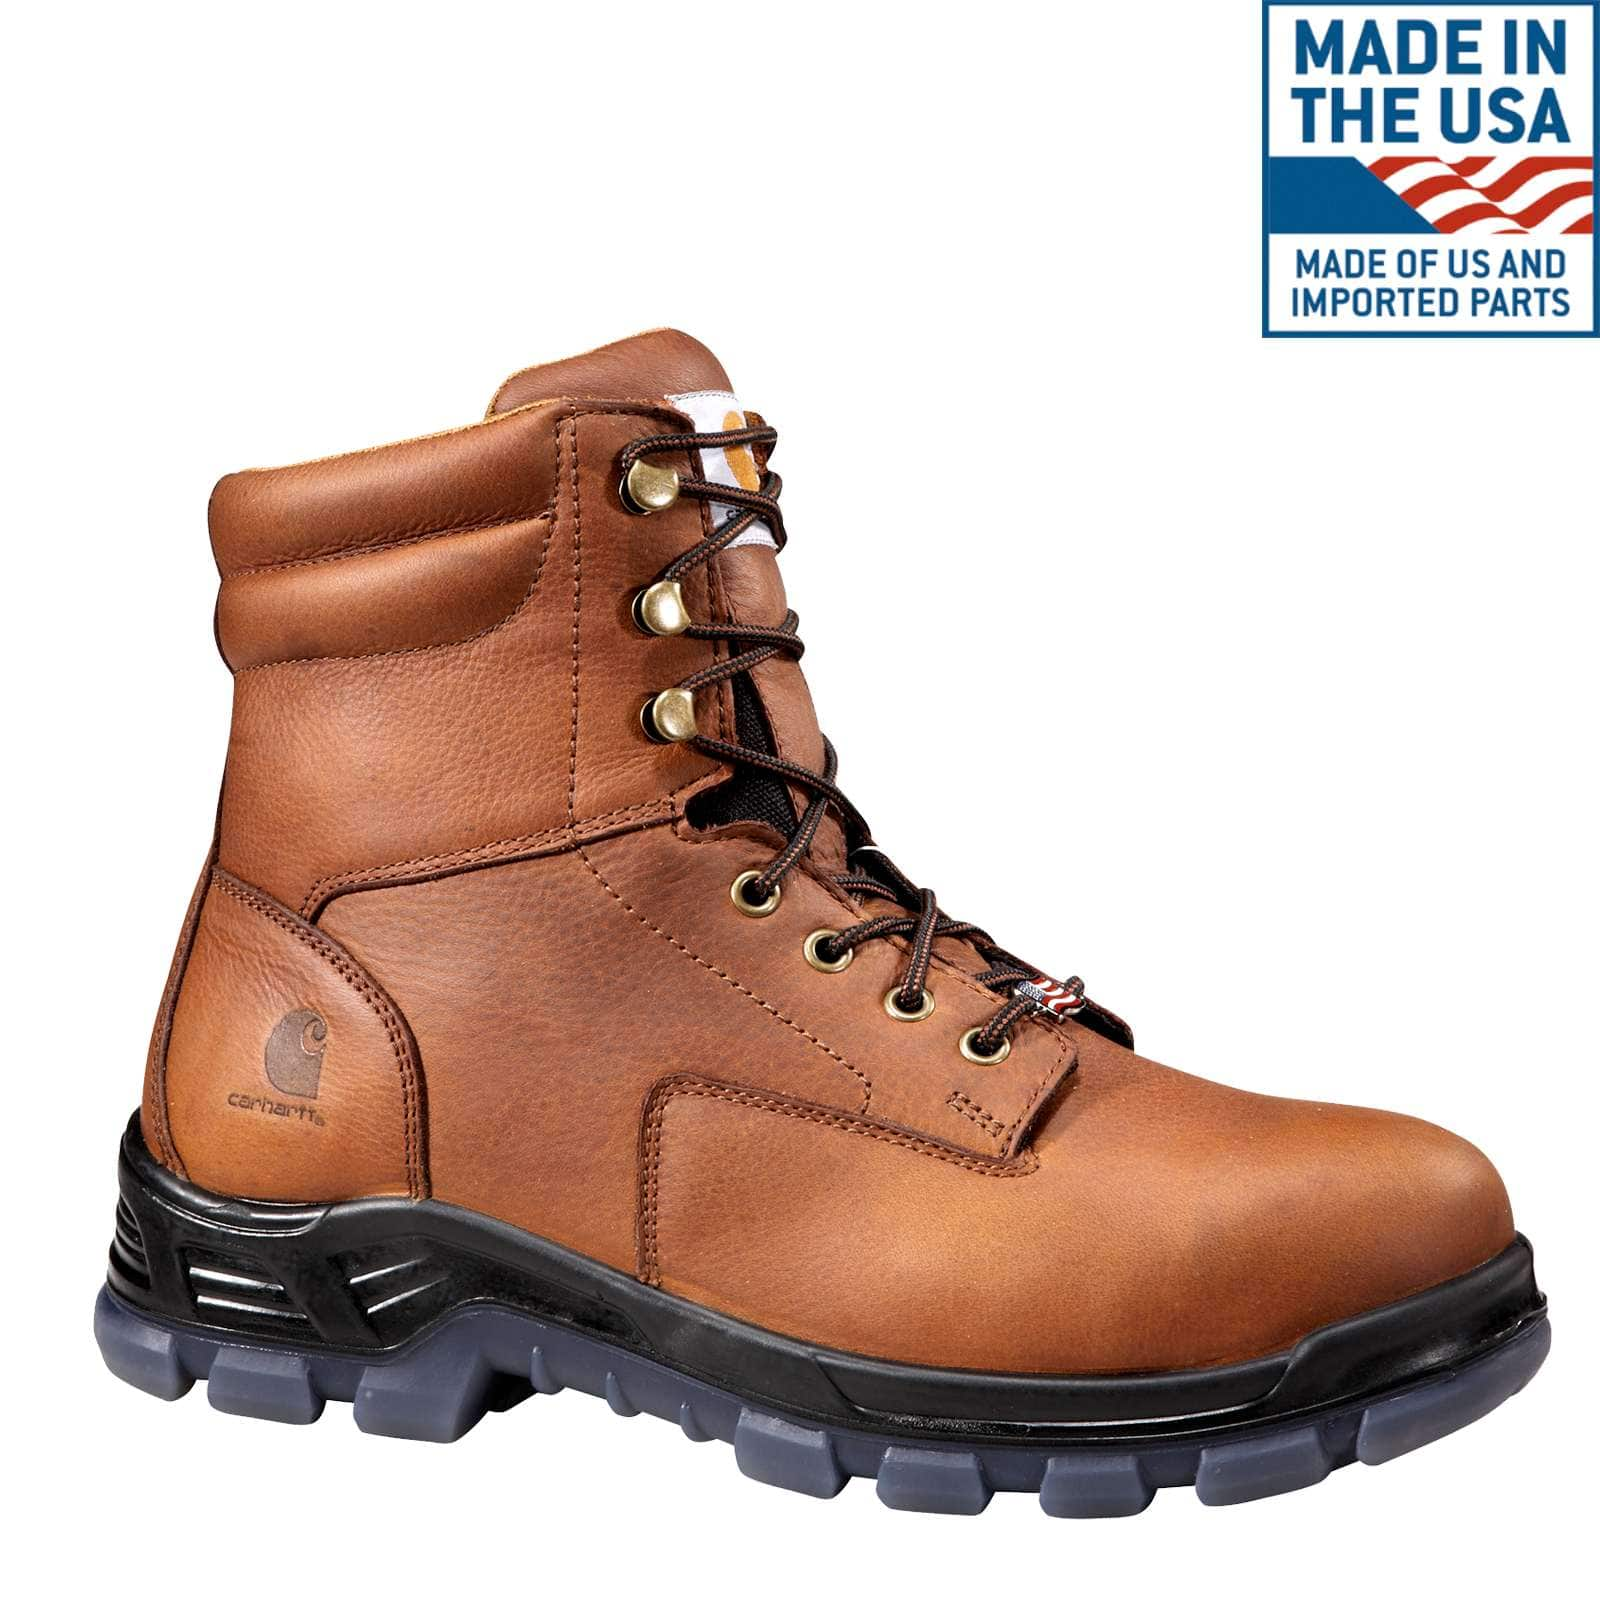 7b636743d3a2 Men s Made in the USA 8-Inch Composite Toe Work Boot